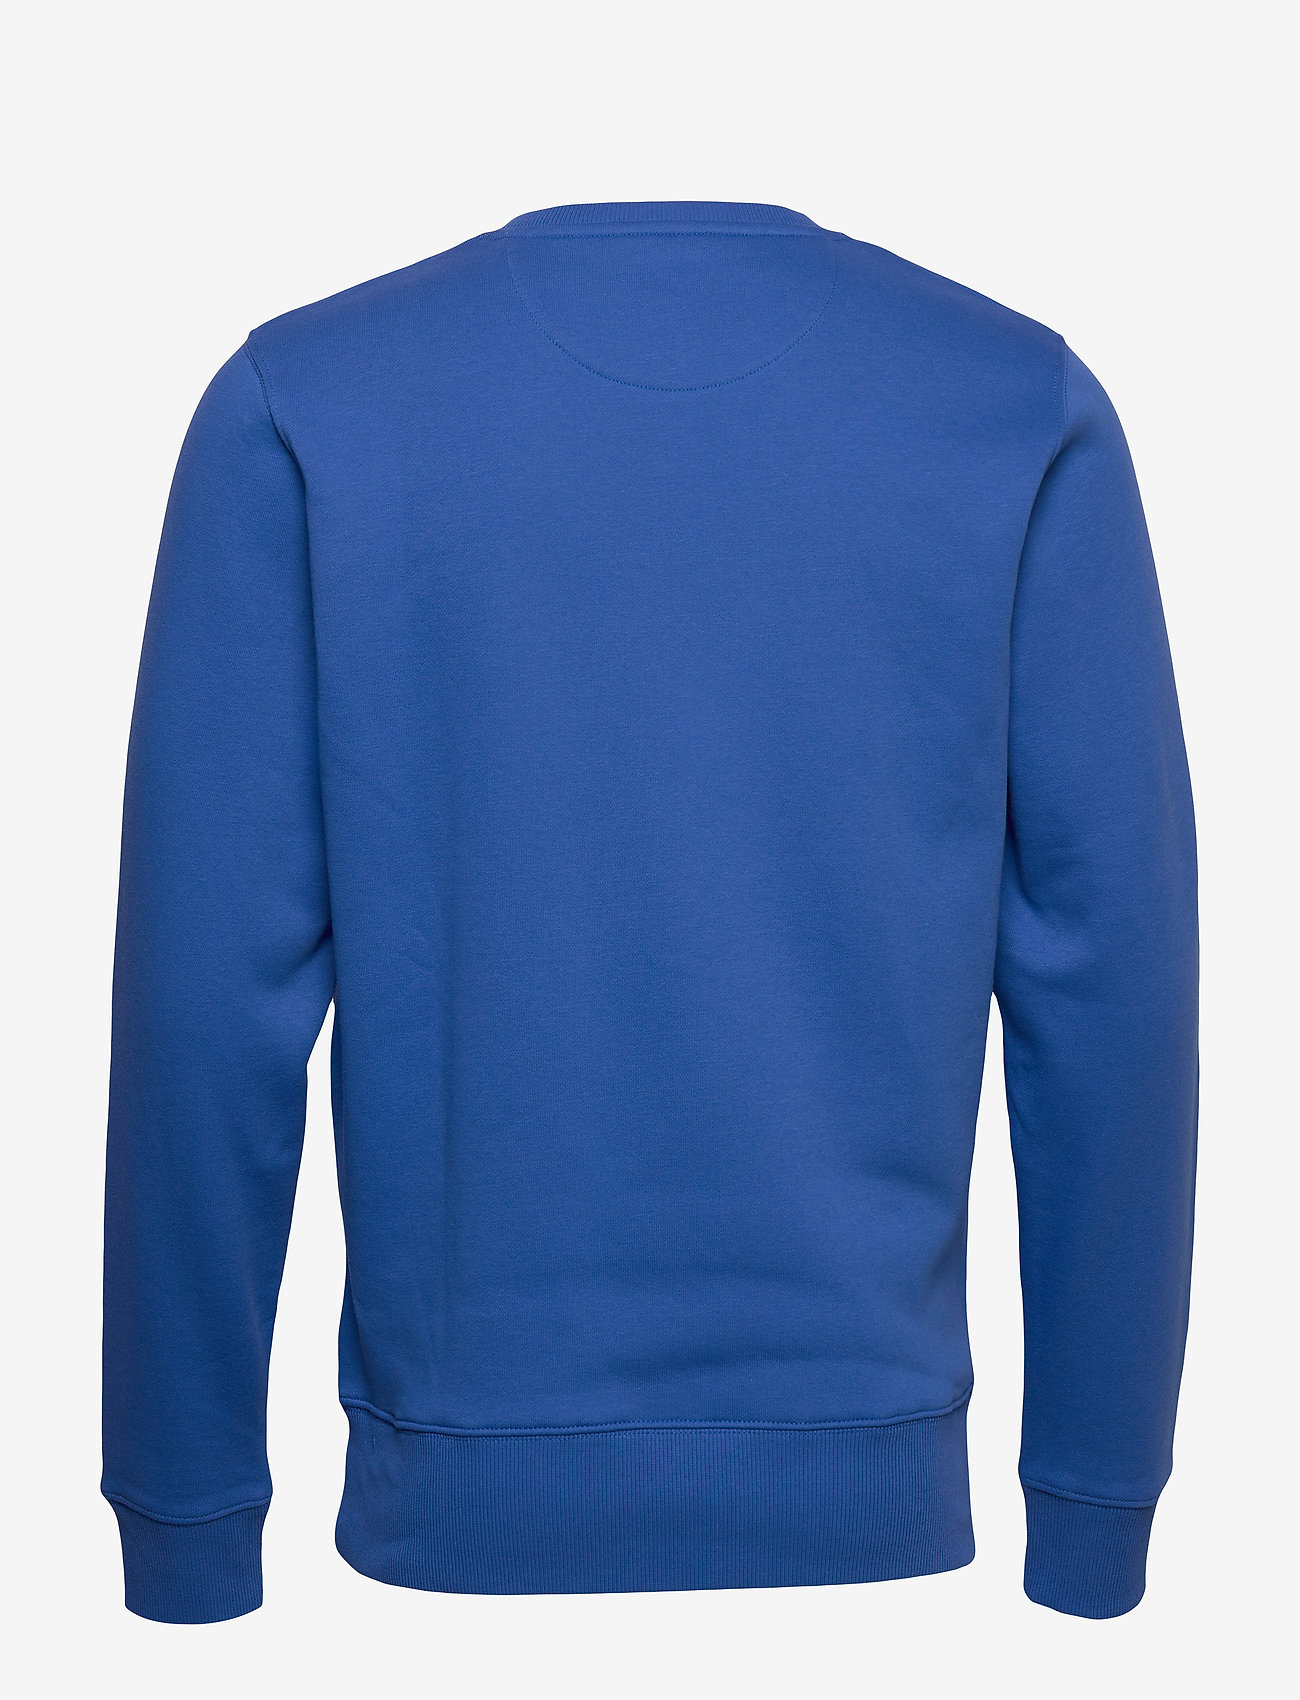 GANT - D1. MEDIUM SHIELD C-NECK SWEAT - basic sweatshirts - nautical blue - 1